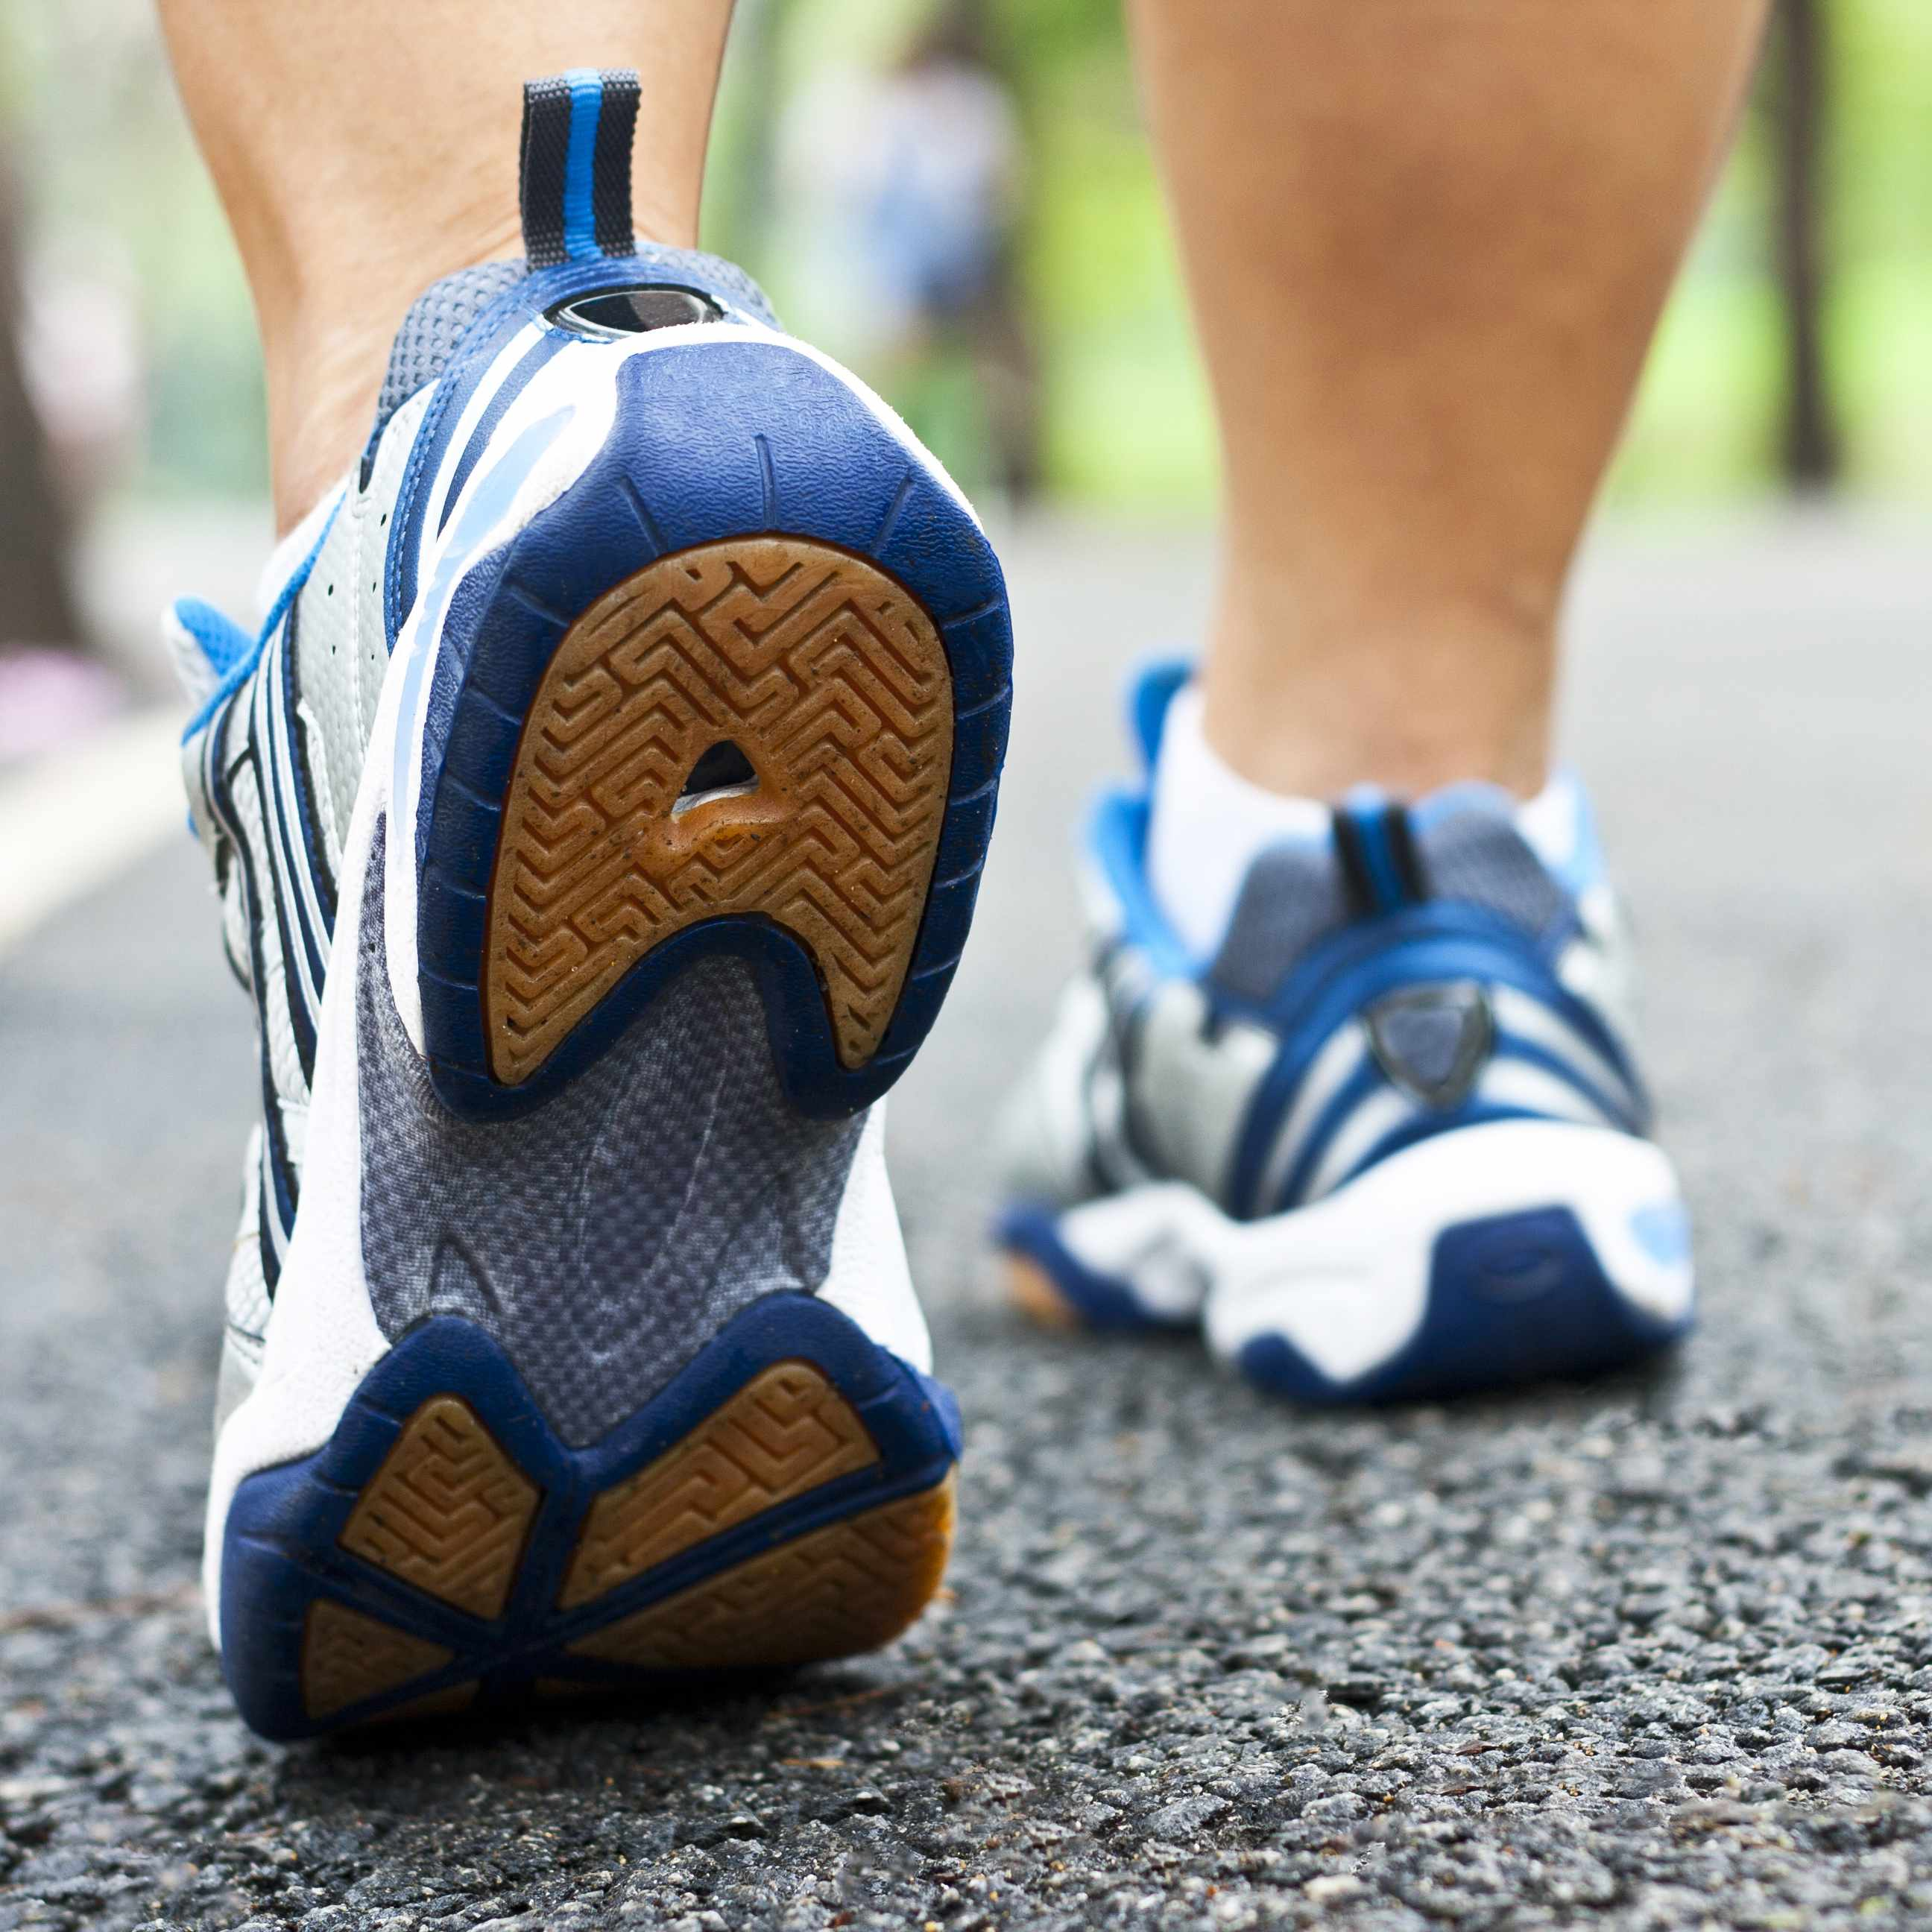 a close-up of a person's lower legs and walking shoes